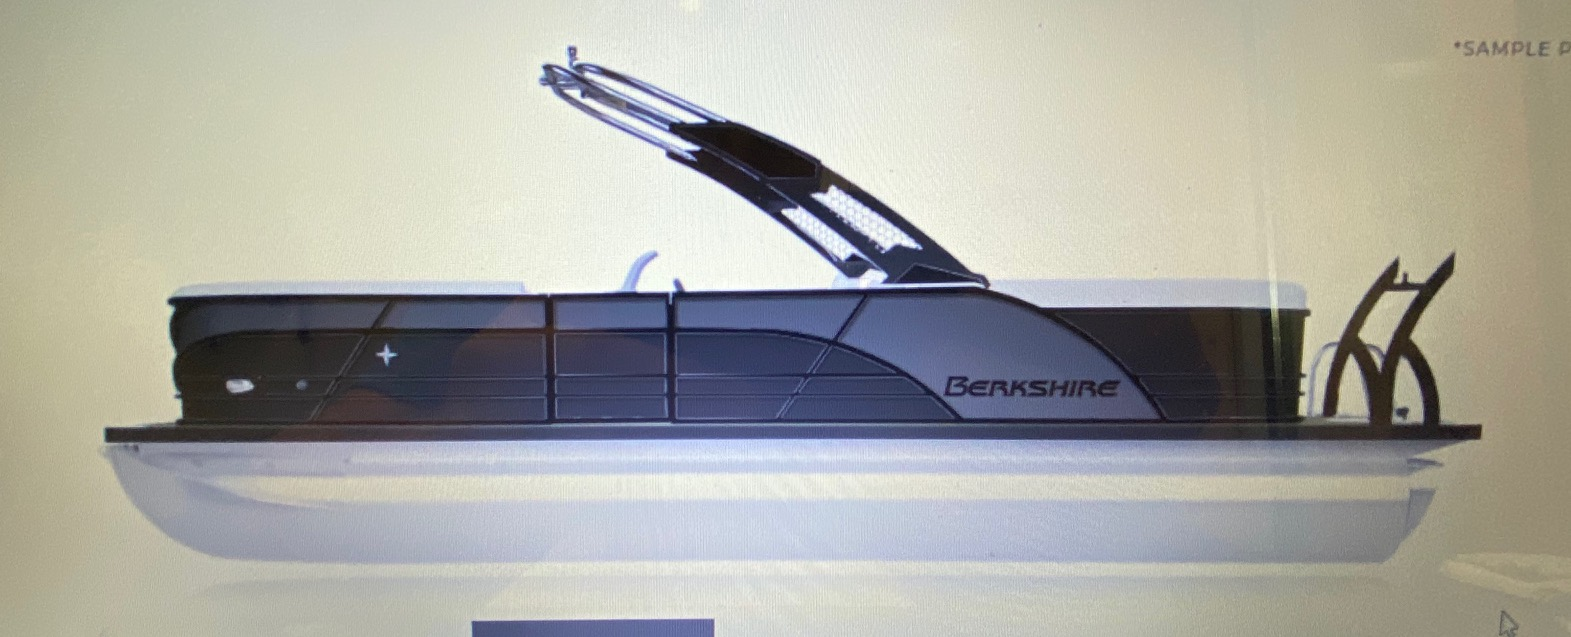 2021 BERKSHIRE STS Series 25RFX 3.0 Tri-toon  (On order, secure yours